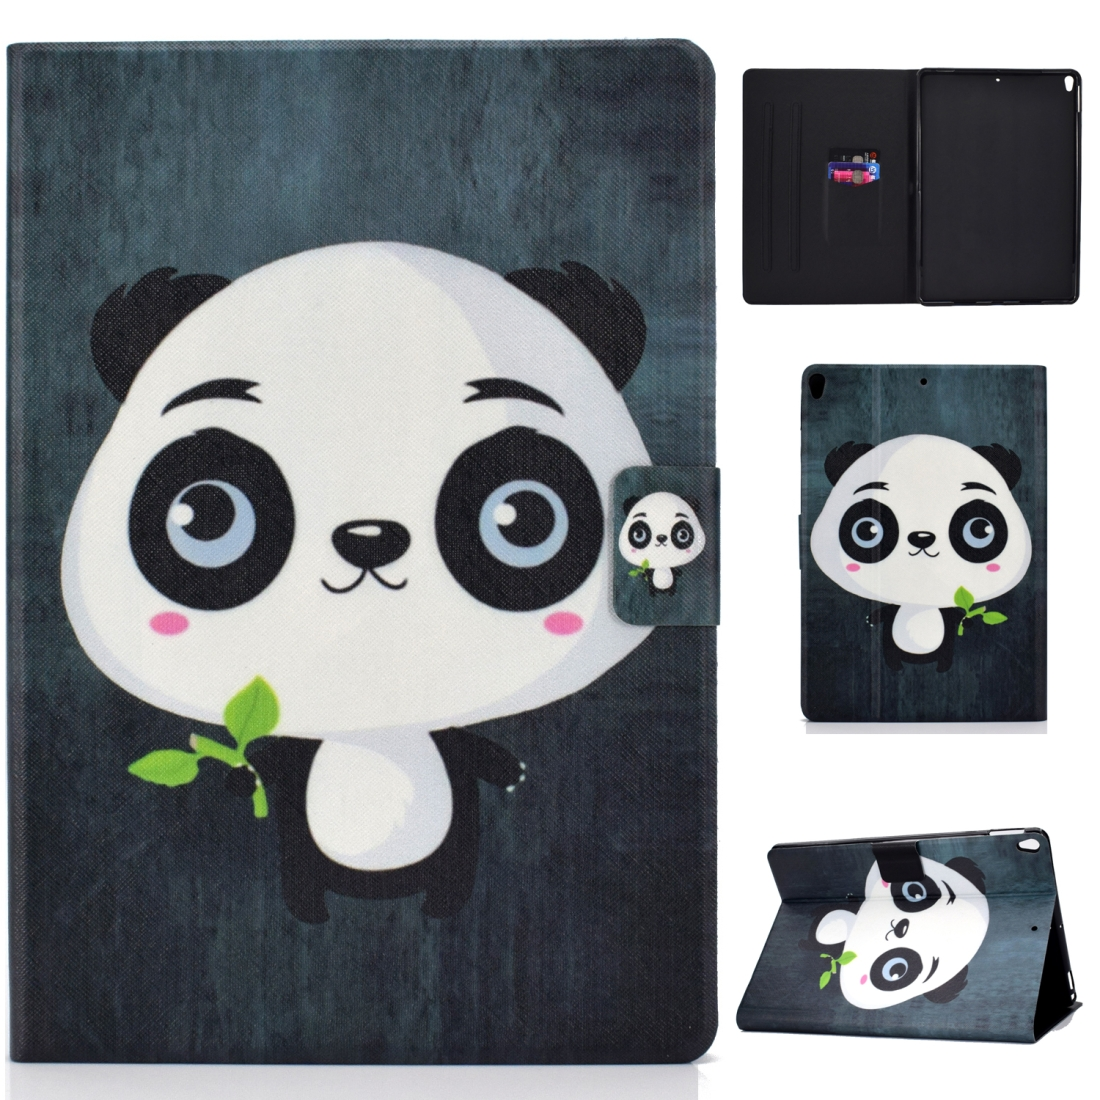 Artsy Protective iPad Air 3 Case (10.5 Inch), iPad Air (2019), Auto Sleep, Non-slip (Panda)